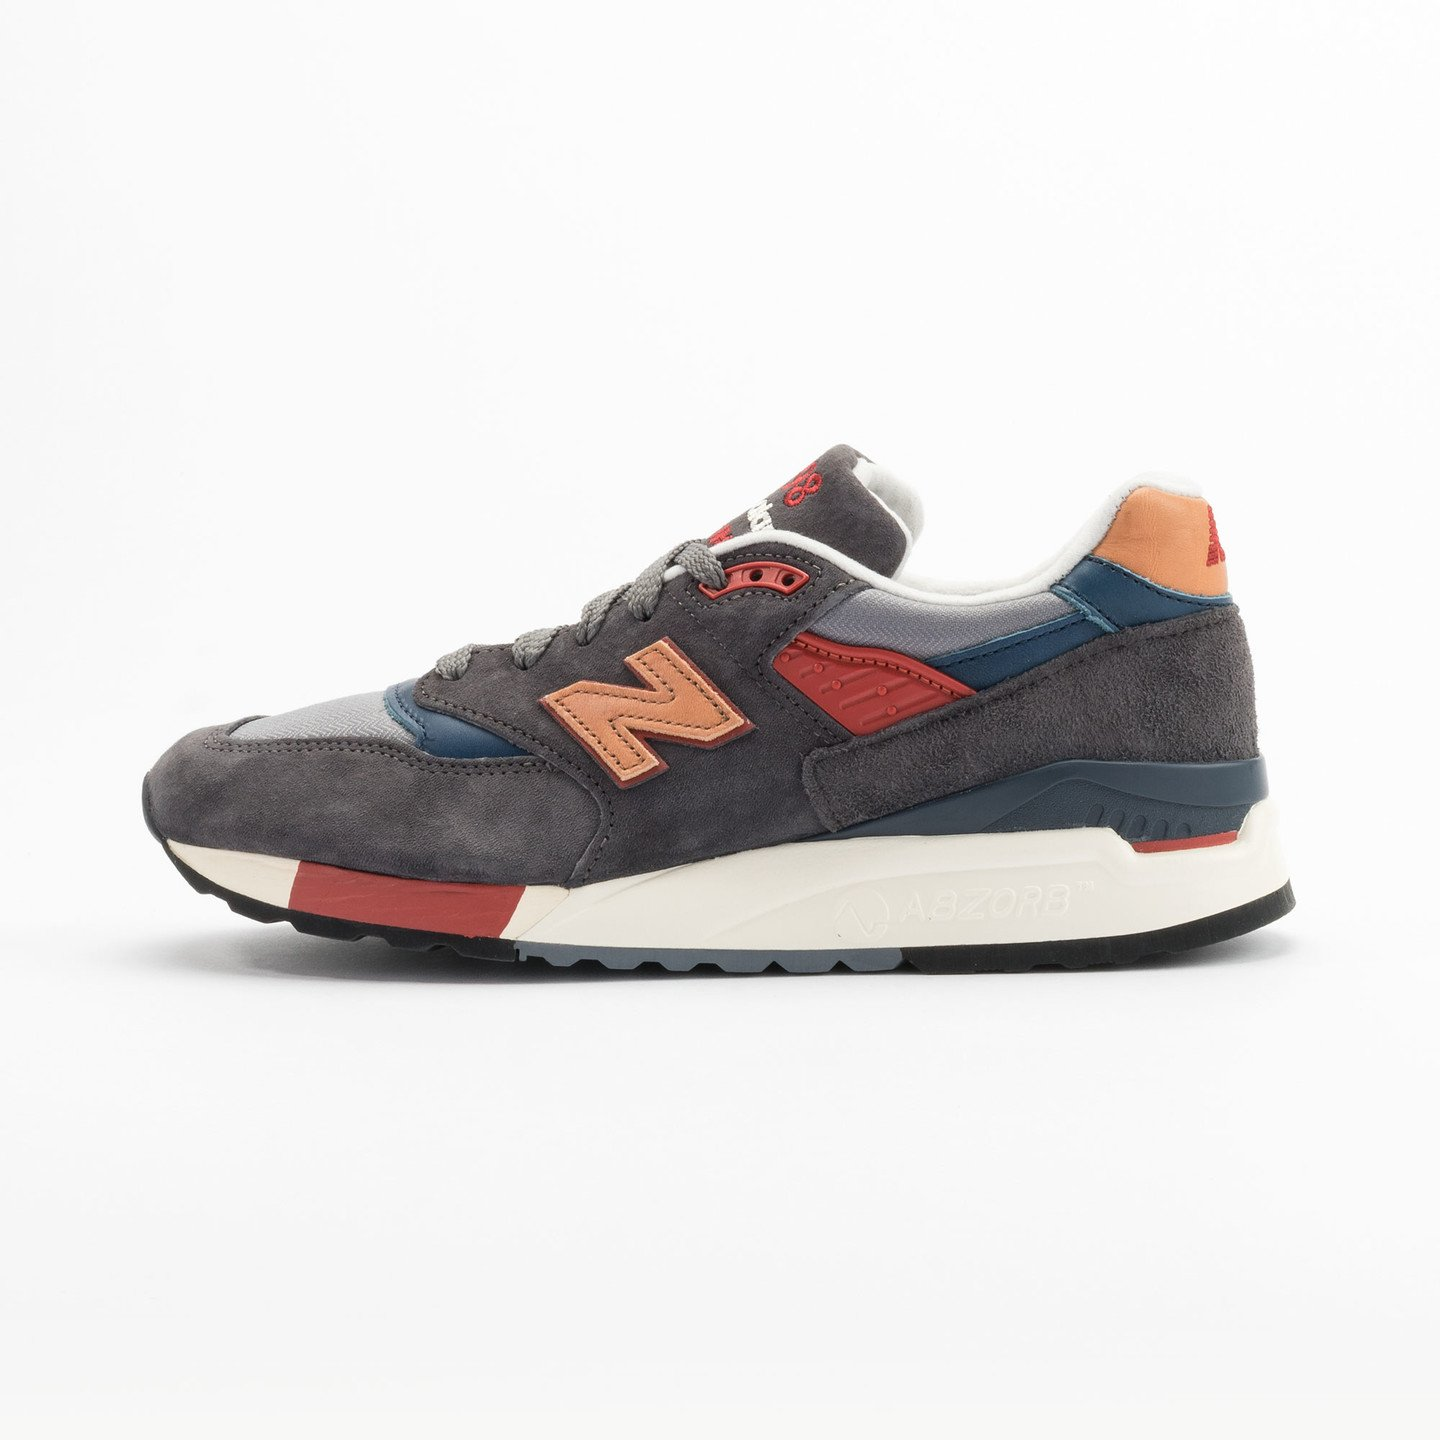 New Balance M998 Made in USA Dark Grey / Beige / Red / Navy M998DBR-44.5